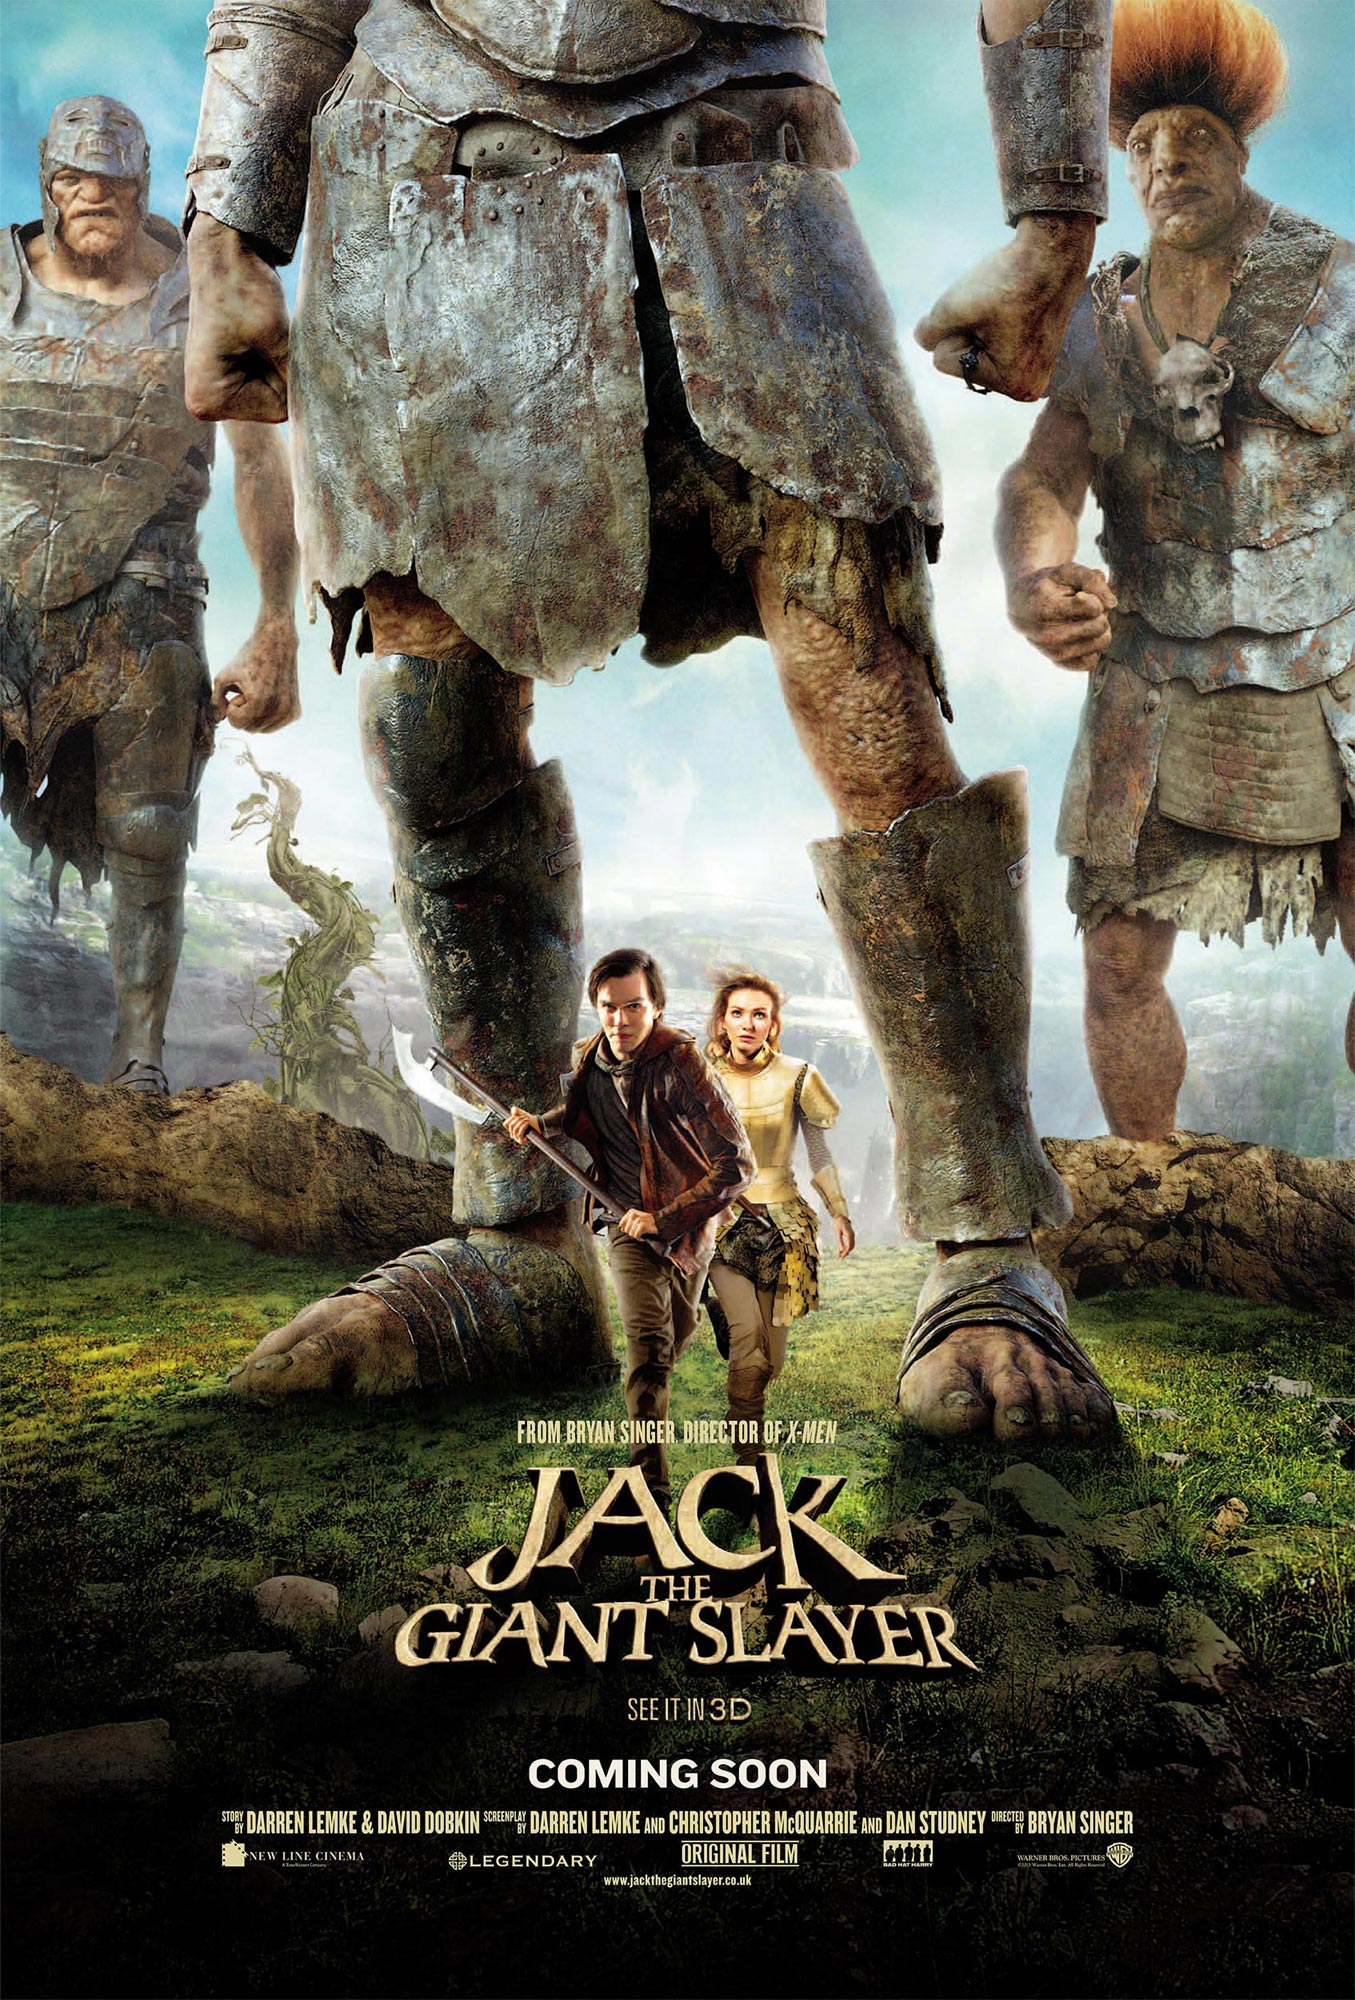 http://www.filmofilia.com/wp-content/uploads/2013/02/Jack-the-Giant-Slayer-Poster.jpg